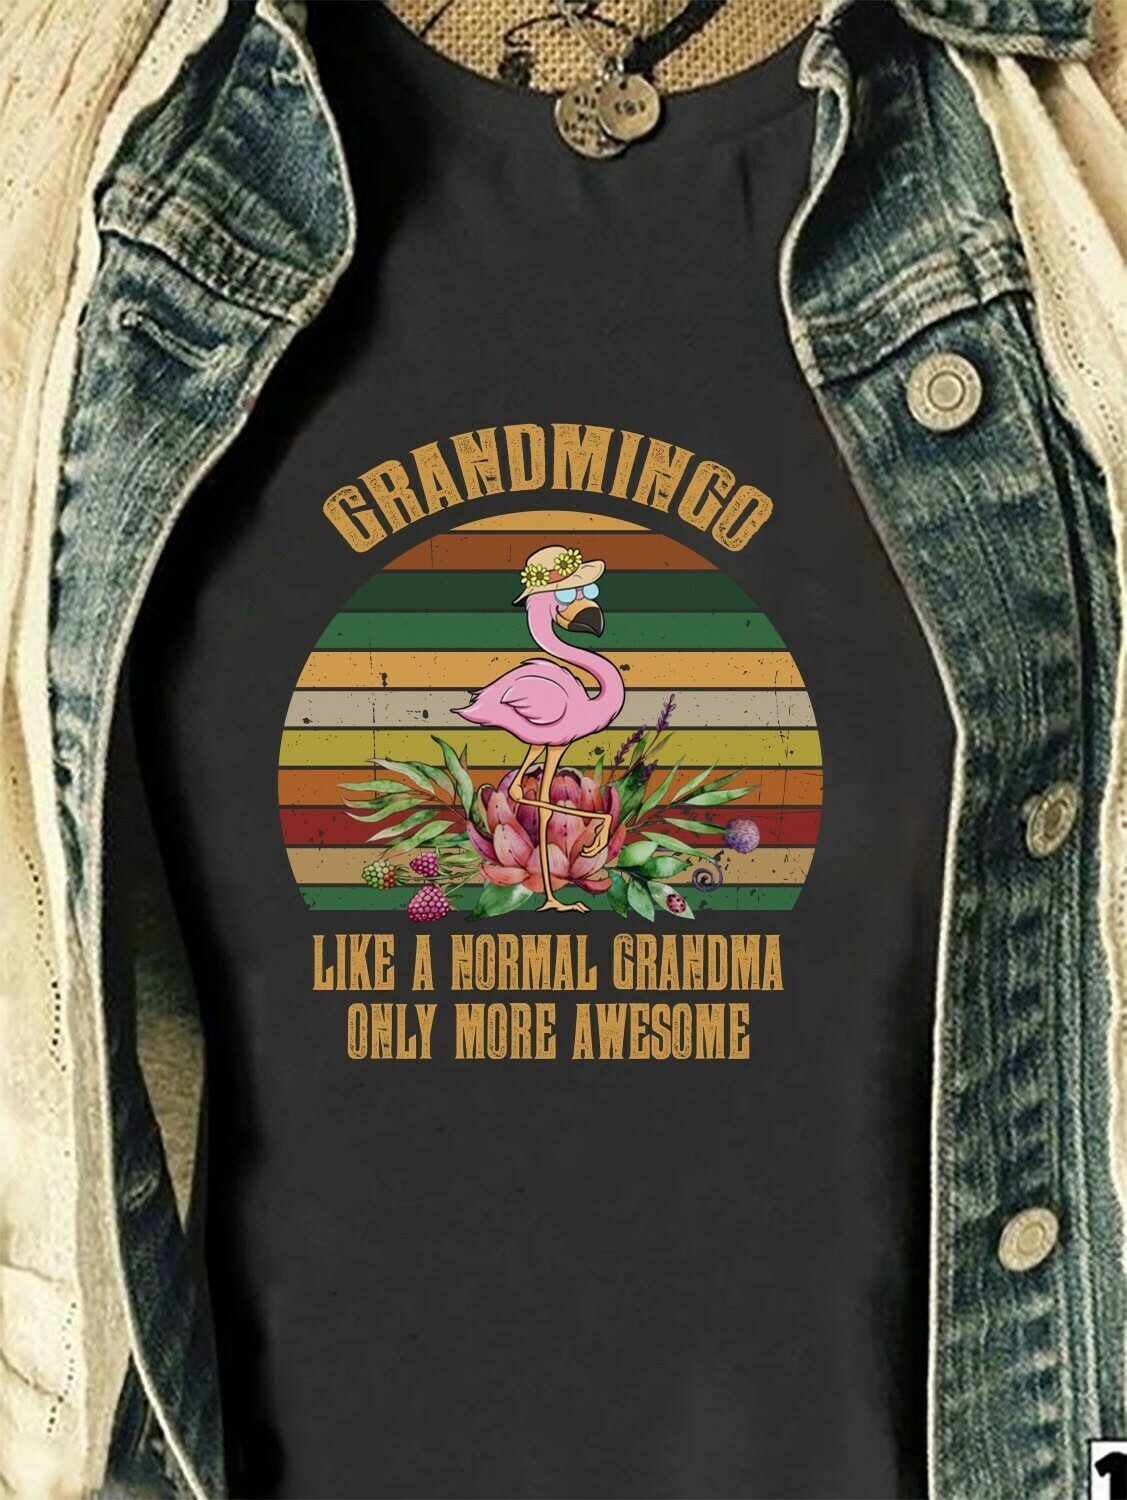 Grandmingo like a normal grandma only more awesome Flamingo Grammingo Gift for mama grandma nana momlife from son daughter husband T Shirt Long Sleeve Sweatshirt Hoodie Jolly Family Gifts